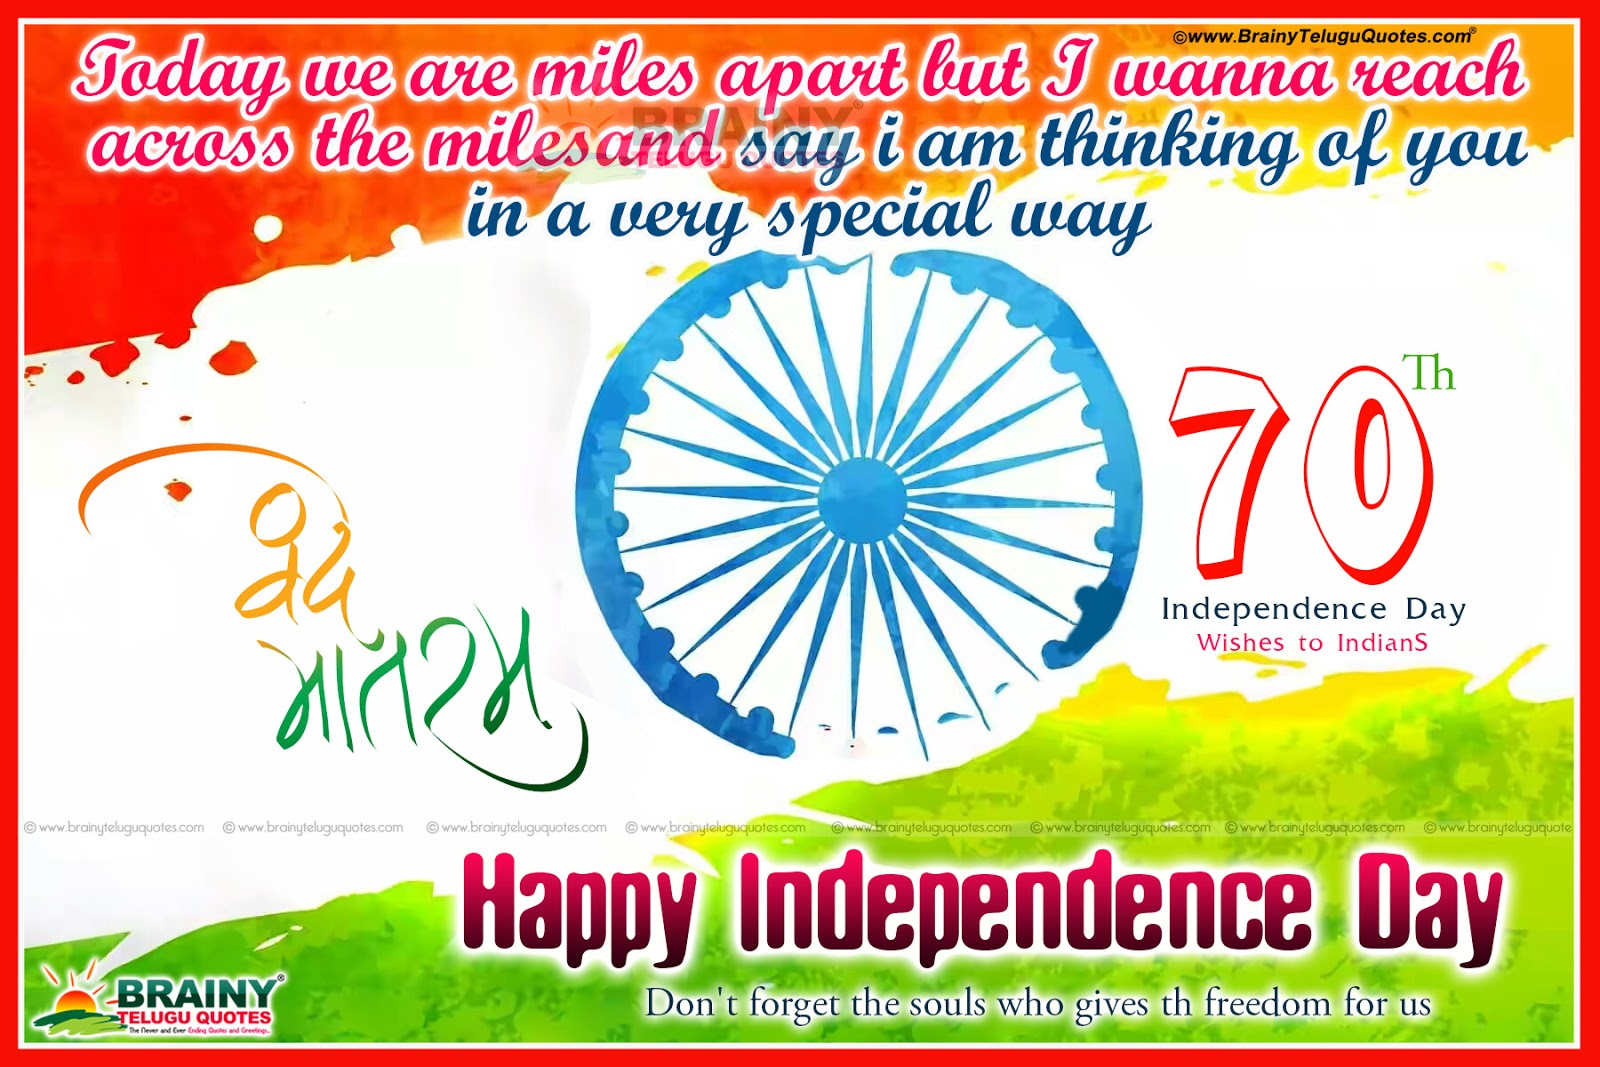 Advance happy 70th independence day quotes greetings messages in in english language best indian independence day wishes in english 70th independence day quotes and messages independence day celebrations hd photos kristyandbryce Images